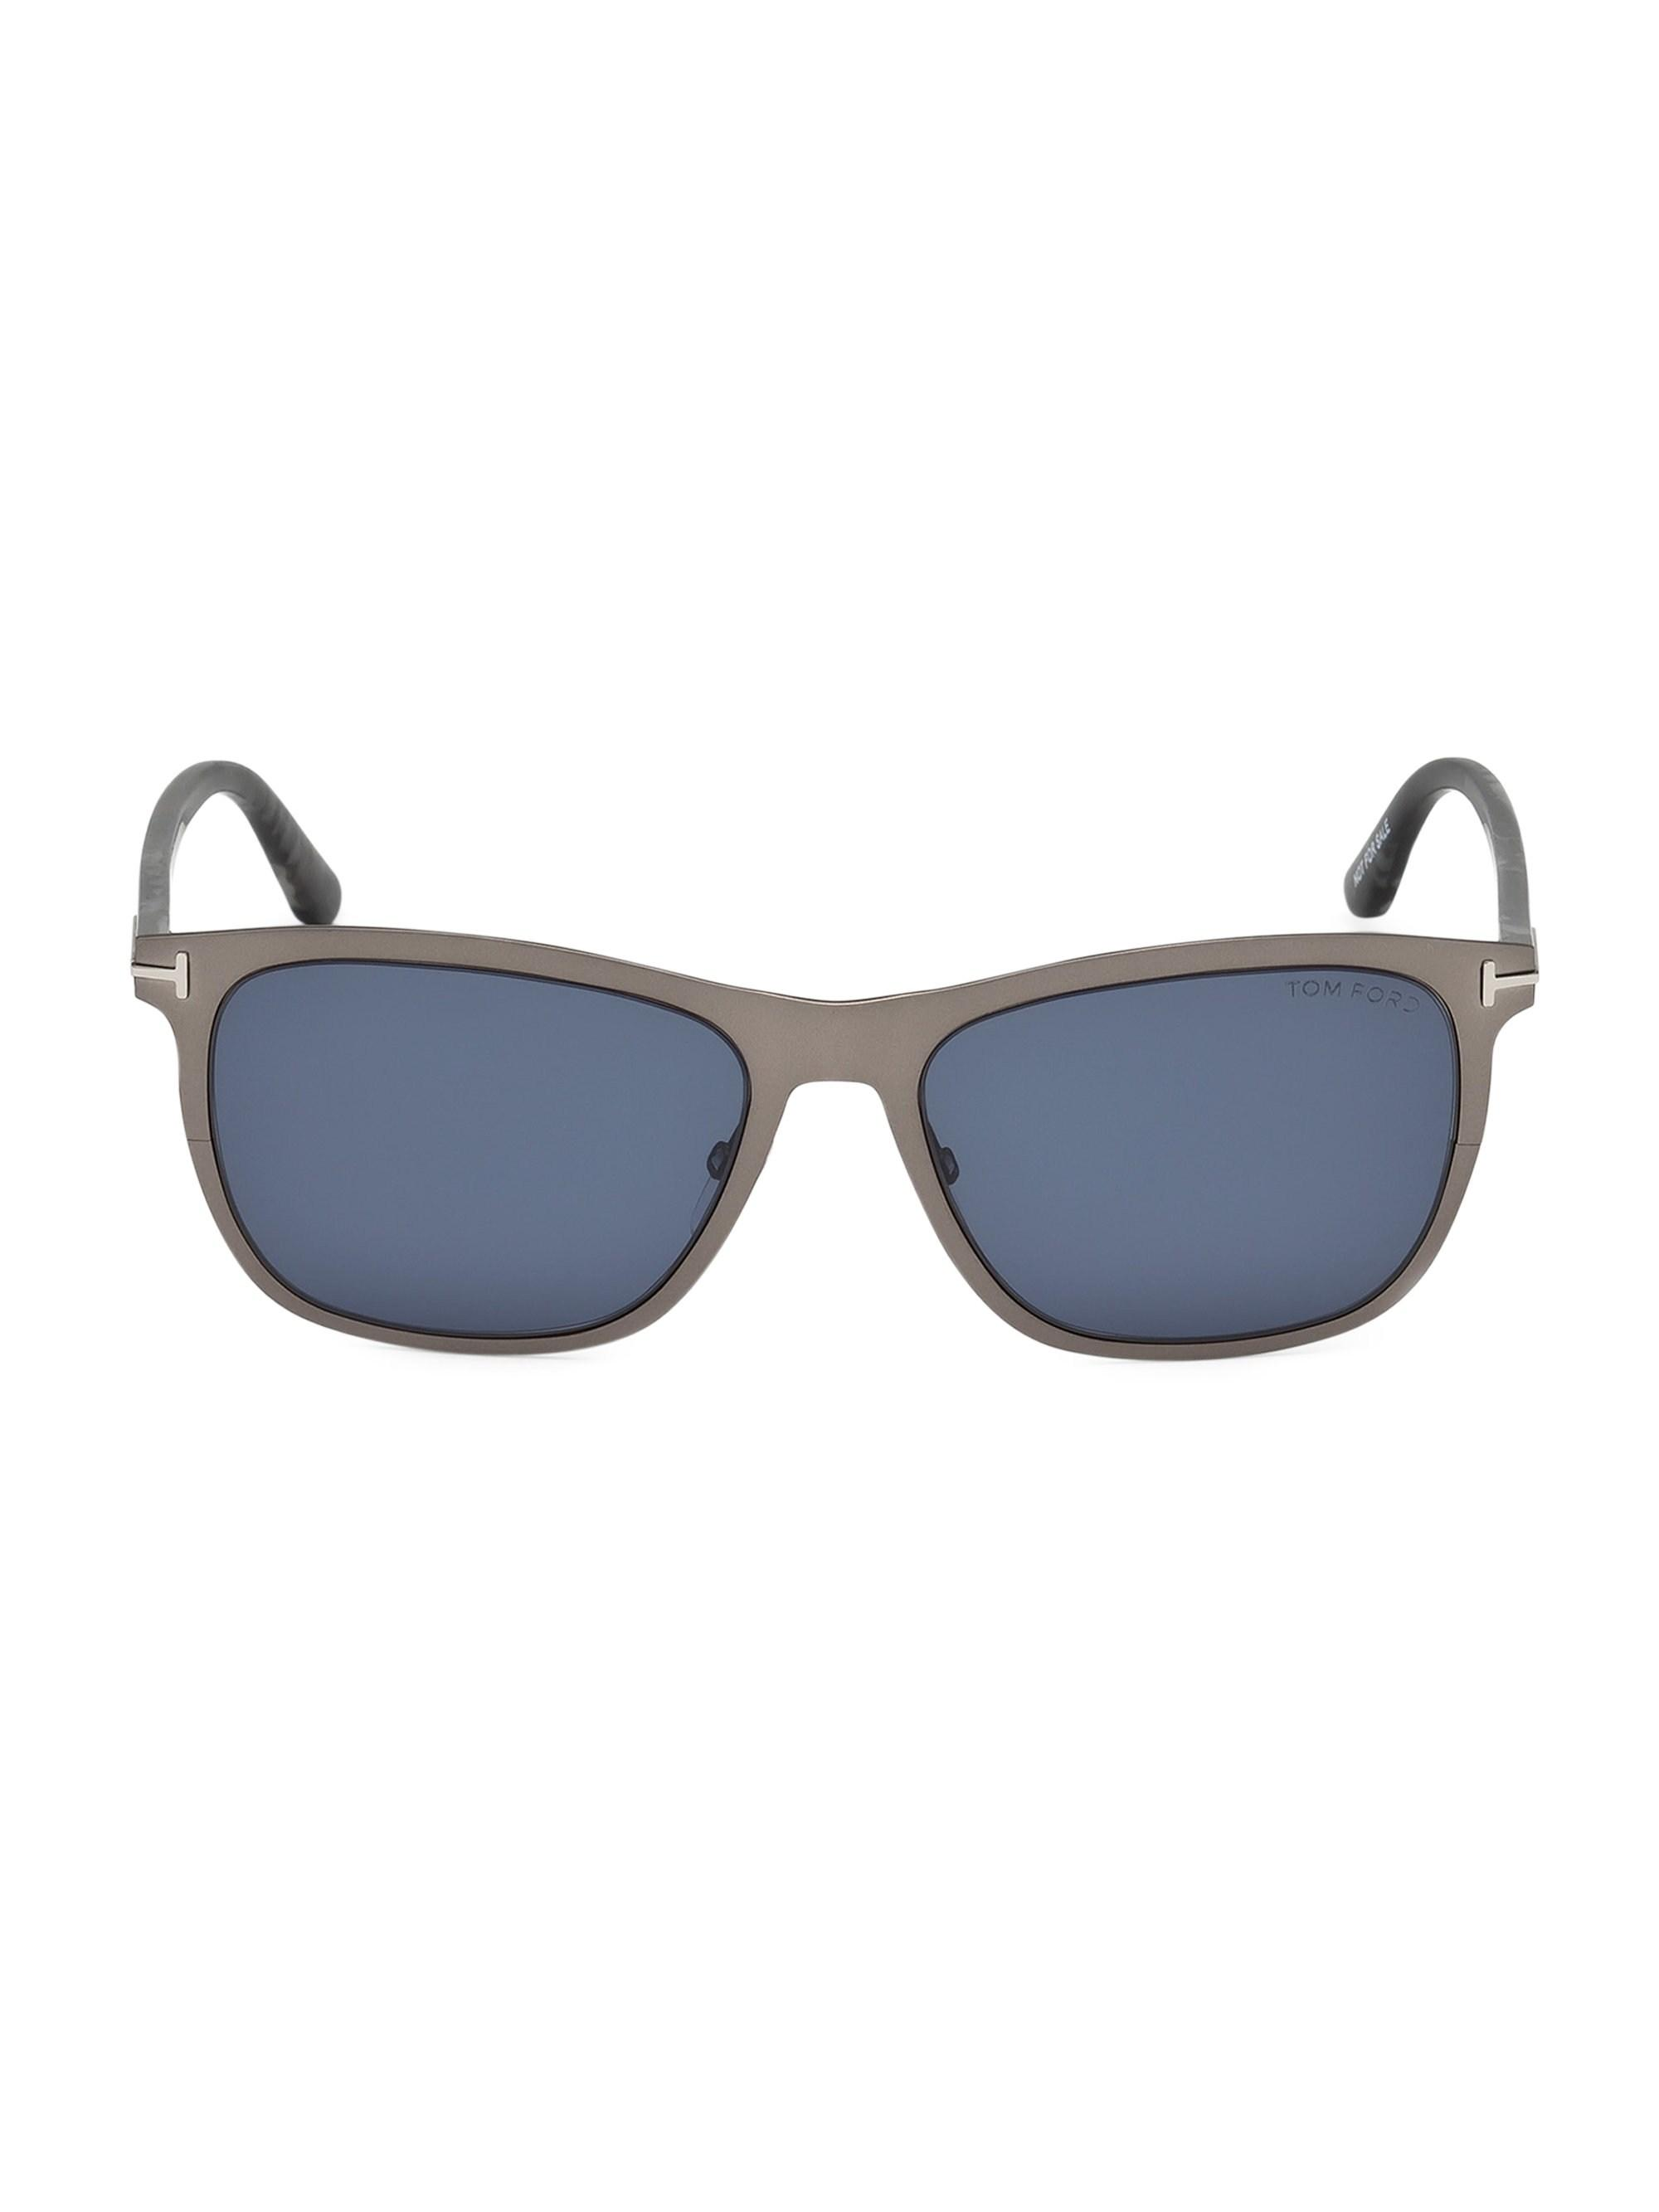 68935242f44 Tom Ford - Blue Alasdhair 55mm Square Sunglasses for Men - Lyst. View  fullscreen